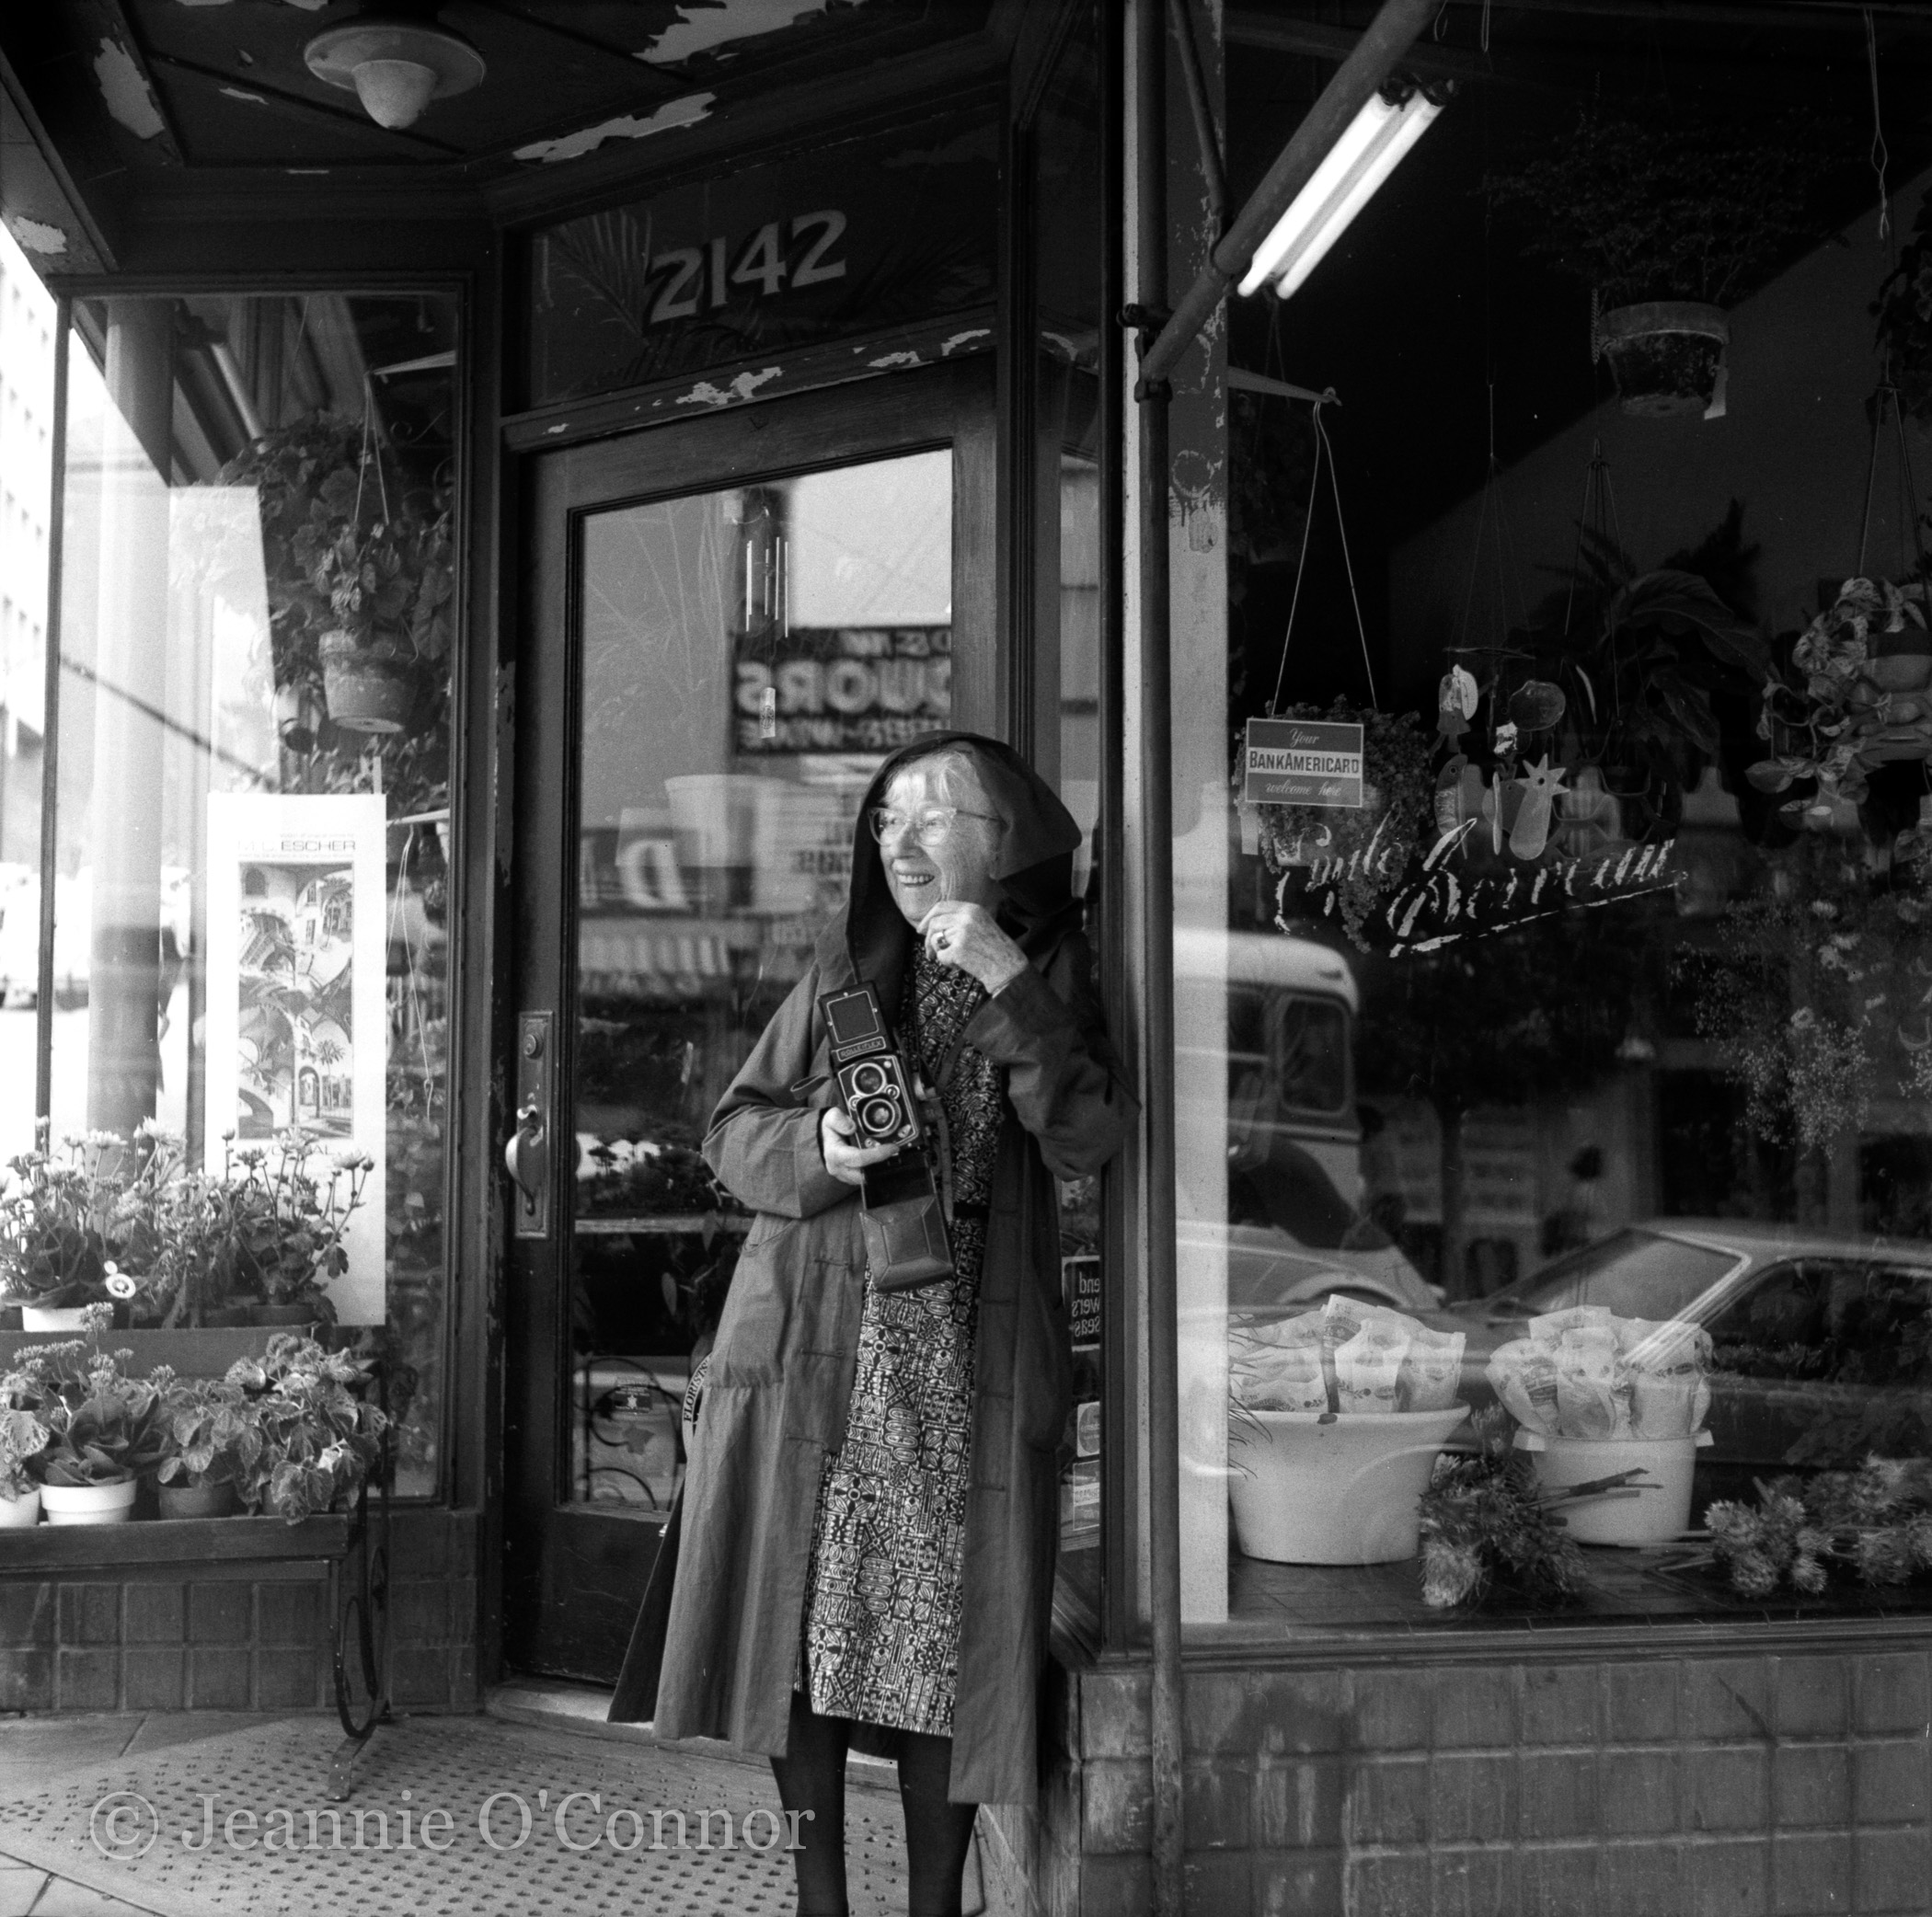 Imogen Cunningham in Doorway Florist